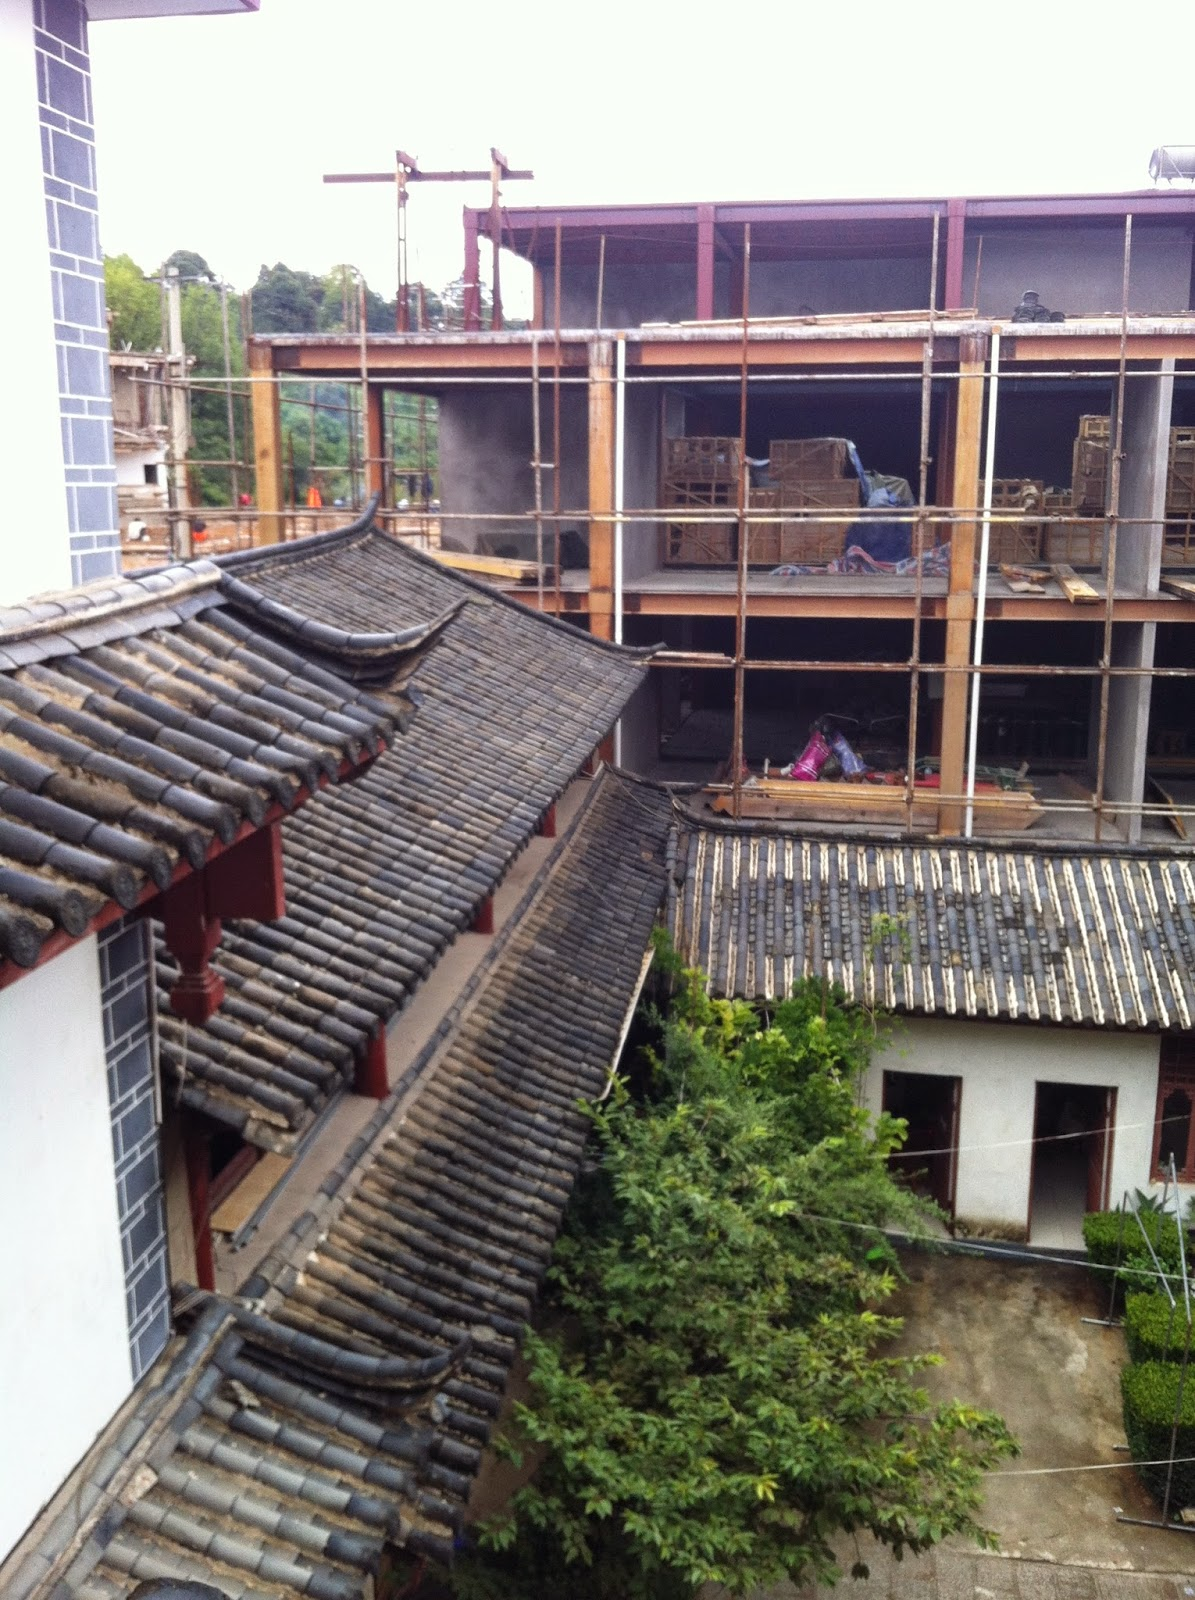 The Cao Jia Hotel in Lijiang